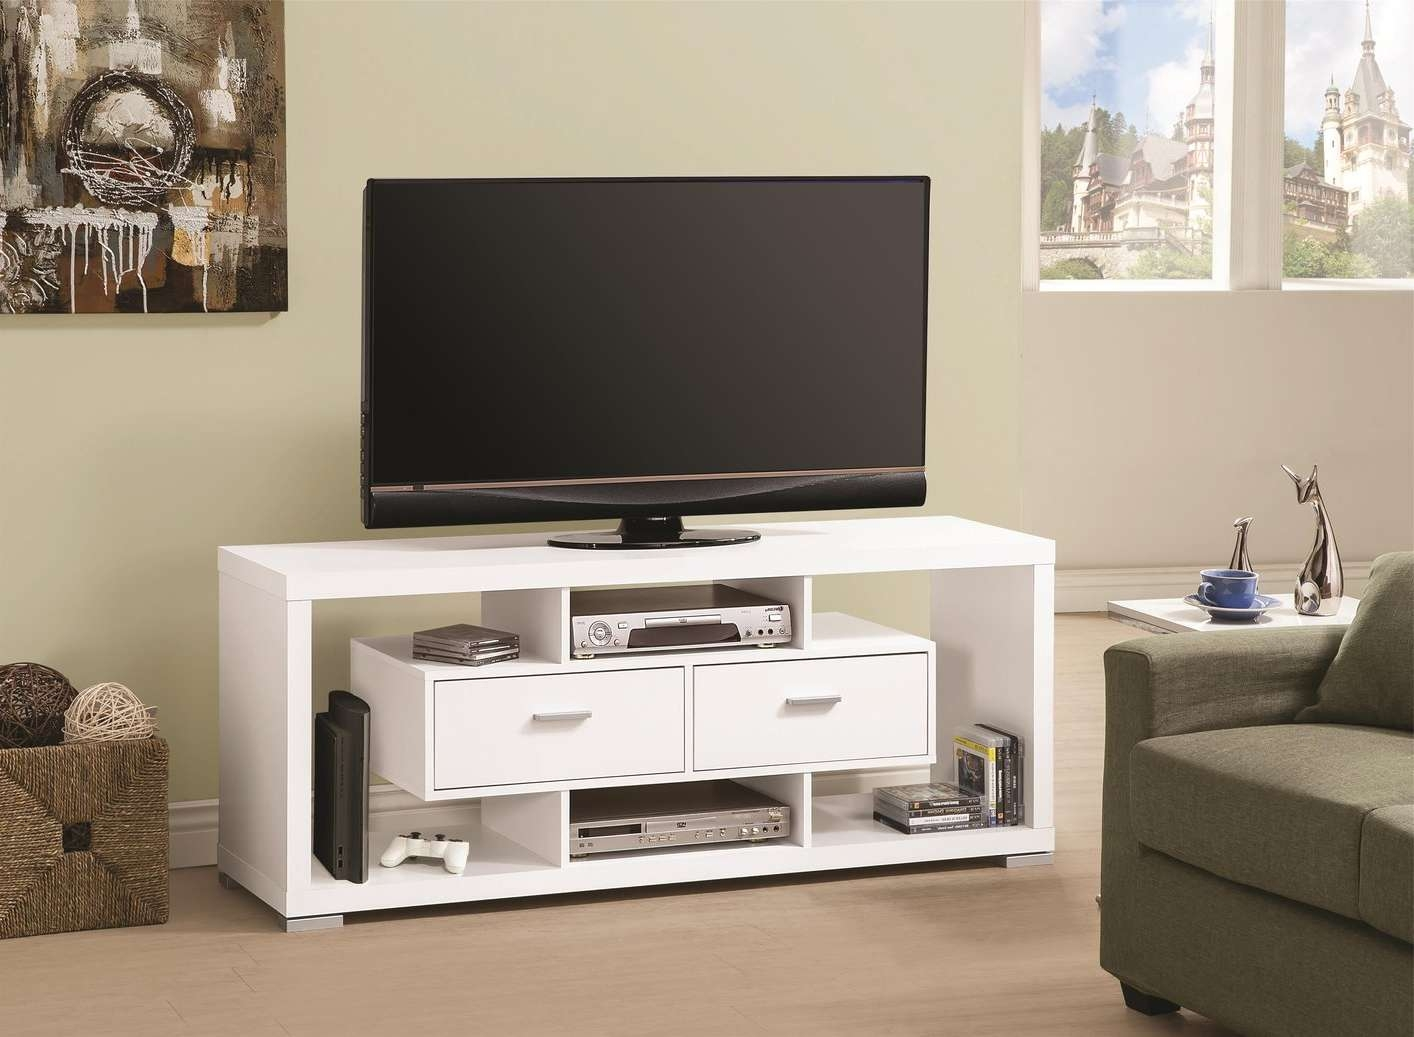 White Wood Tv Stand – Steal A Sofa Furniture Outlet Los Angeles Ca In White And Wood Tv Stands (View 11 of 15)